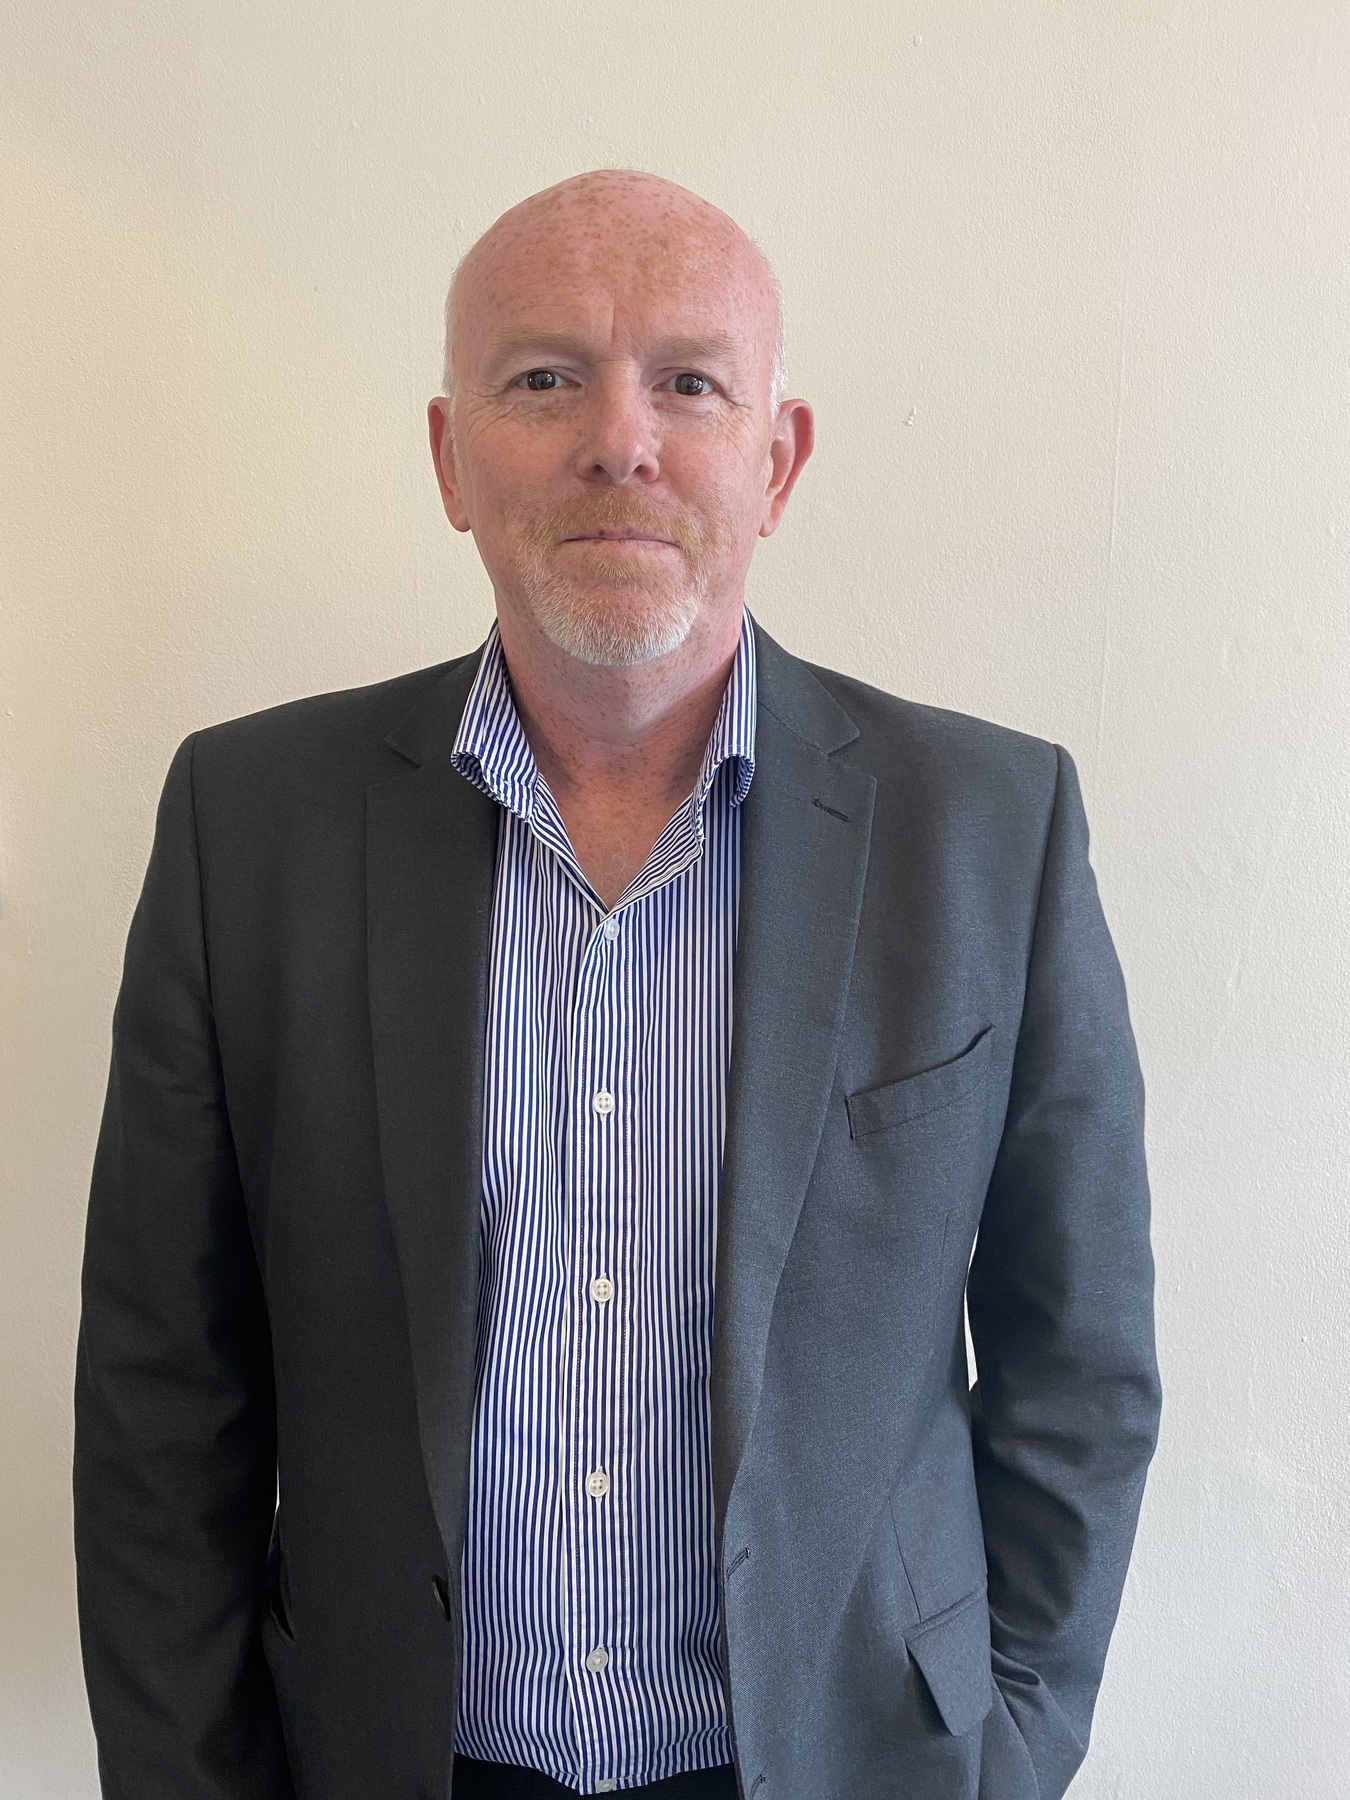 TGt Meets…The New Sales and Development Manager at Responsive Personnel